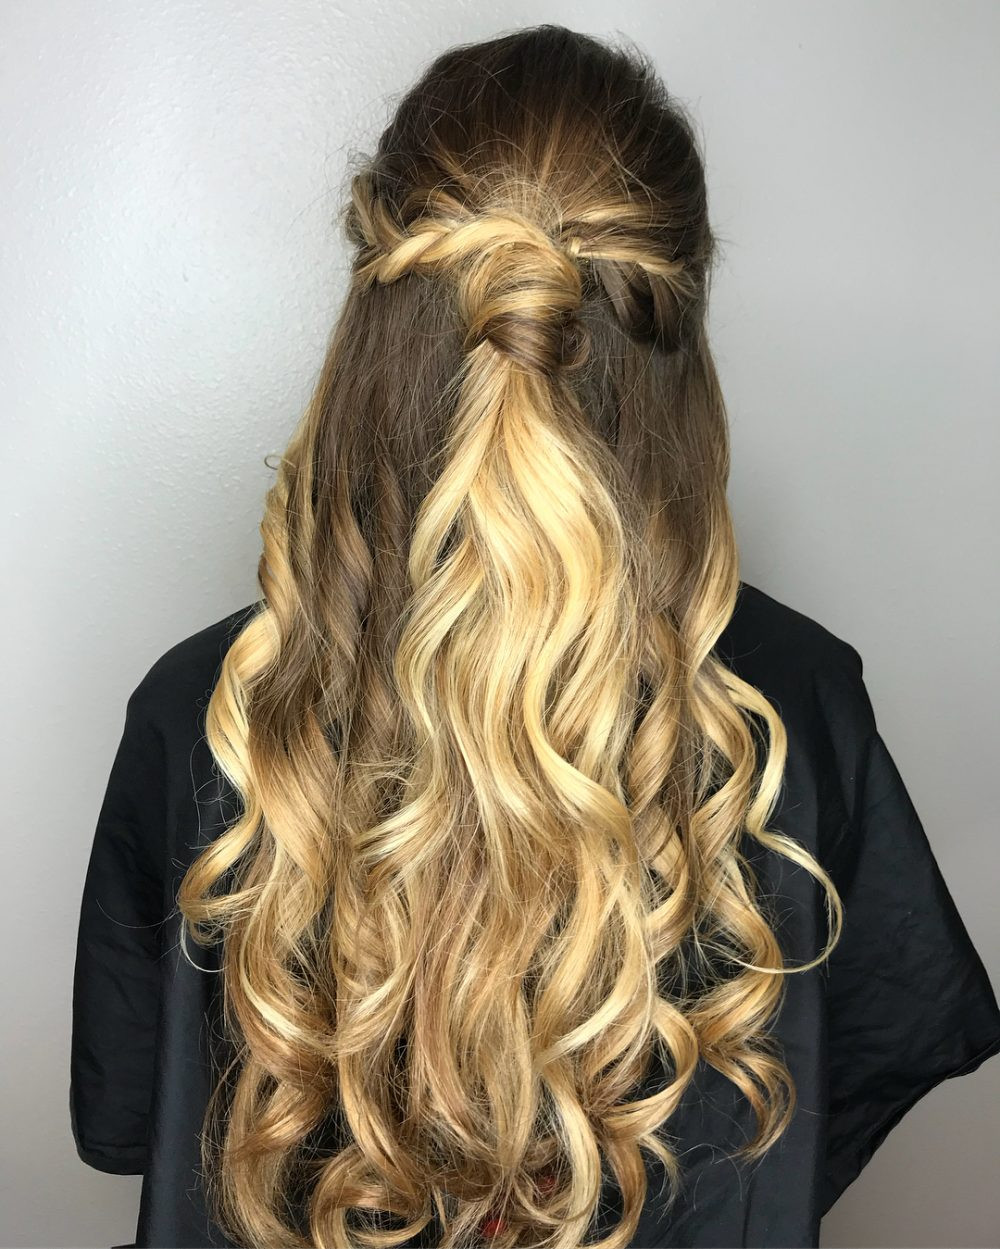 Pageant Hairstyles For Long Hair  29 Prom Hairstyles for Long Hair That Are Gorgeous